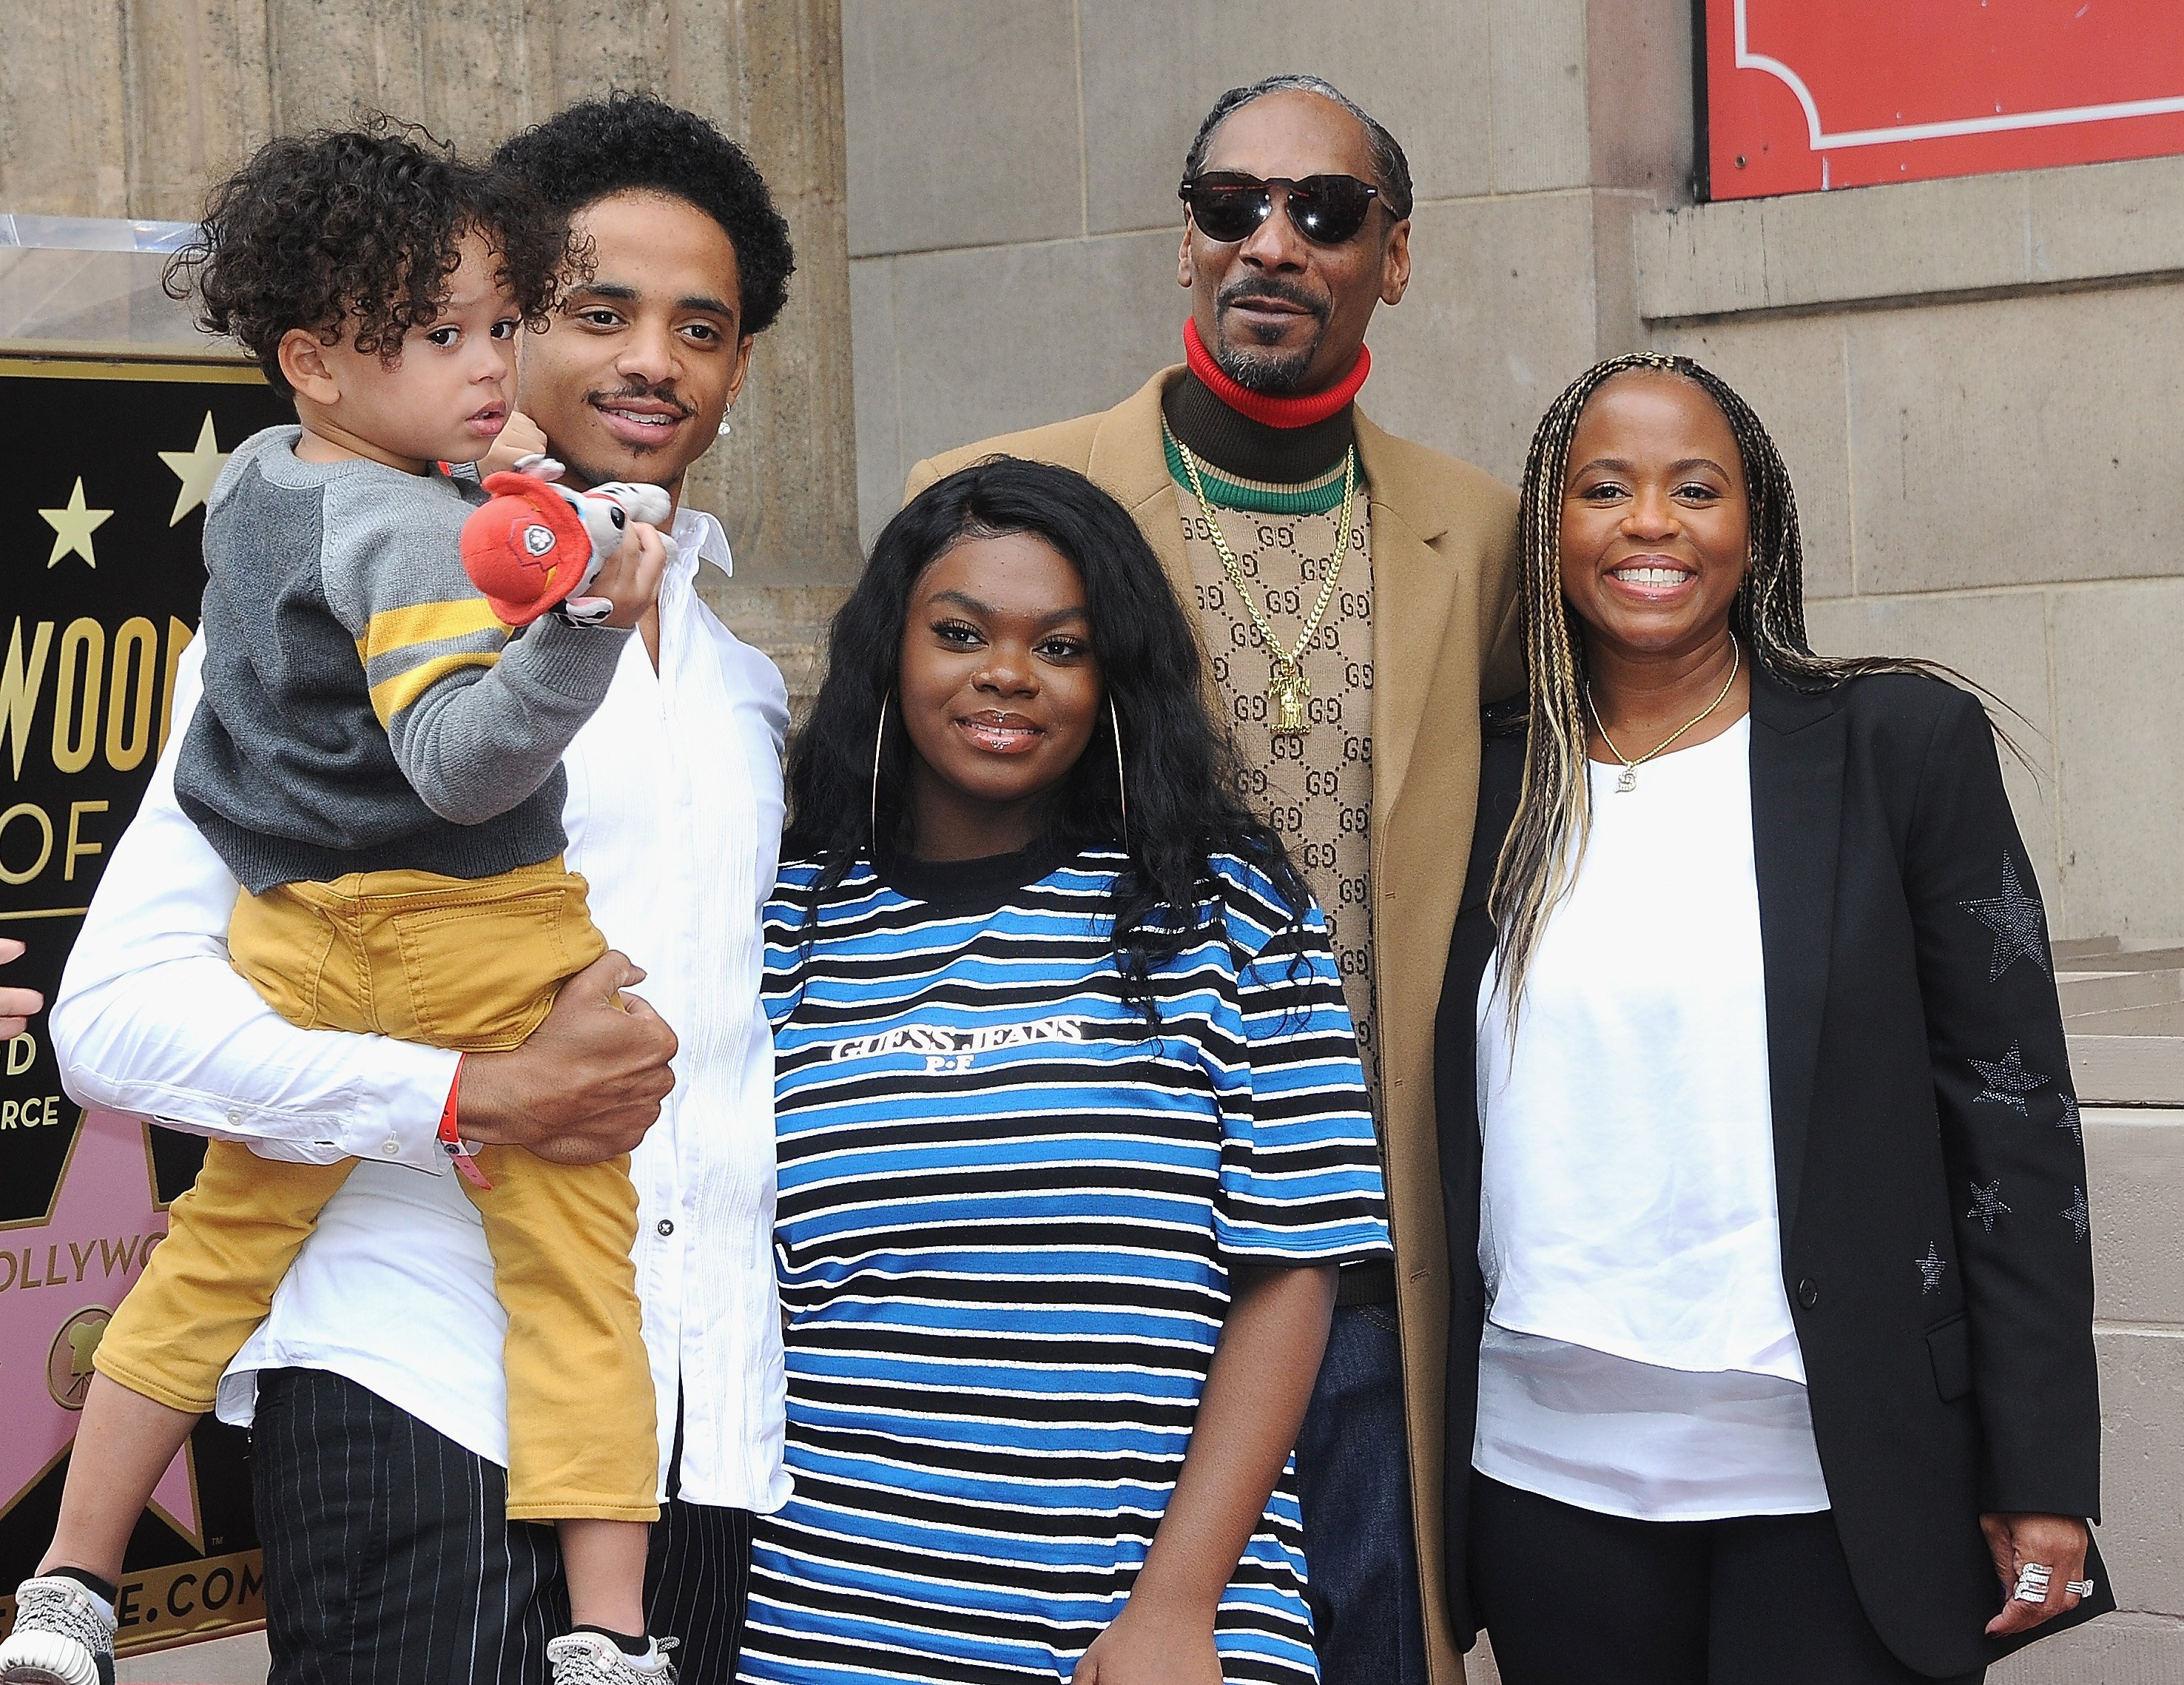 Snoop Dogg & family at Snoop Dogg's star ceremony on The Hollywood Walk of Fame on Nov. 19, 2018 | Photo: Getty Images